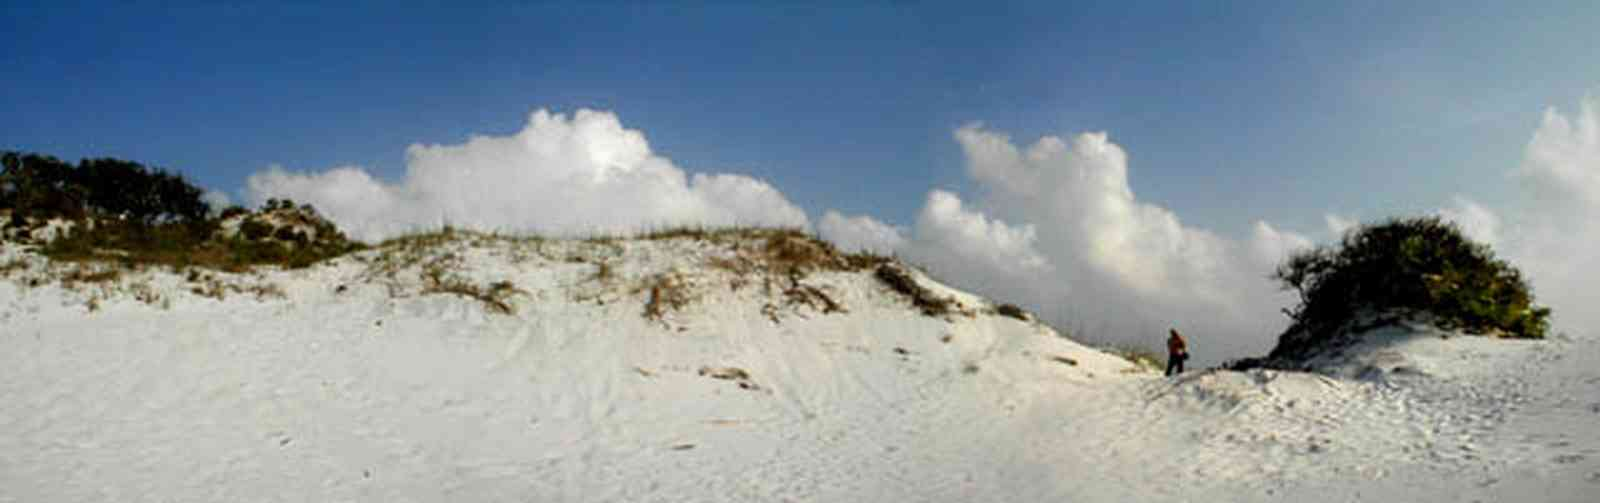 Pensacola-Beach:-Dunes_05.jpg:  santa rosa island, gulf of mexico, gulf islands national seashore, escambia county, cumulus clouds, beach, sand dunes, emerald coast